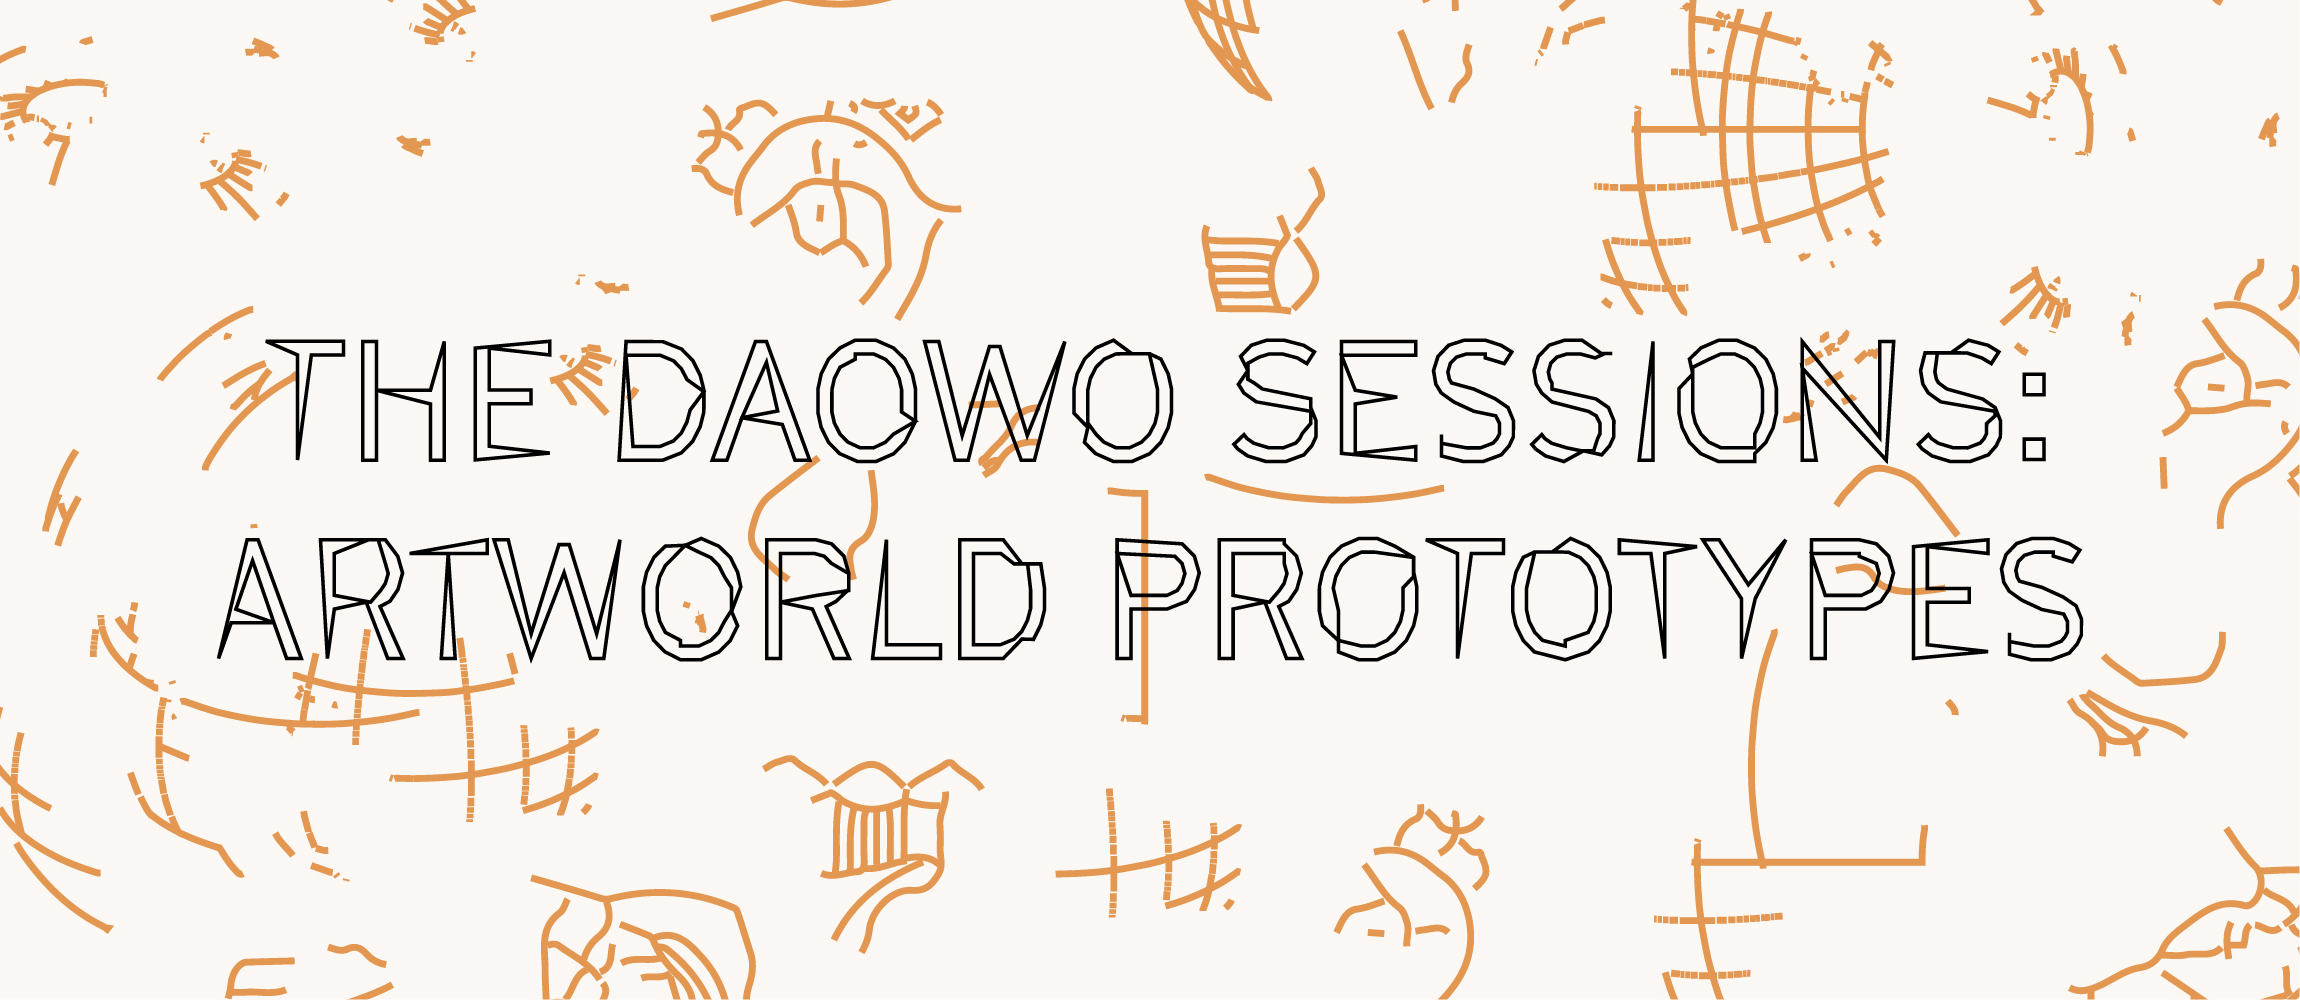 DAOWO Sessions - Artworld Prototypes